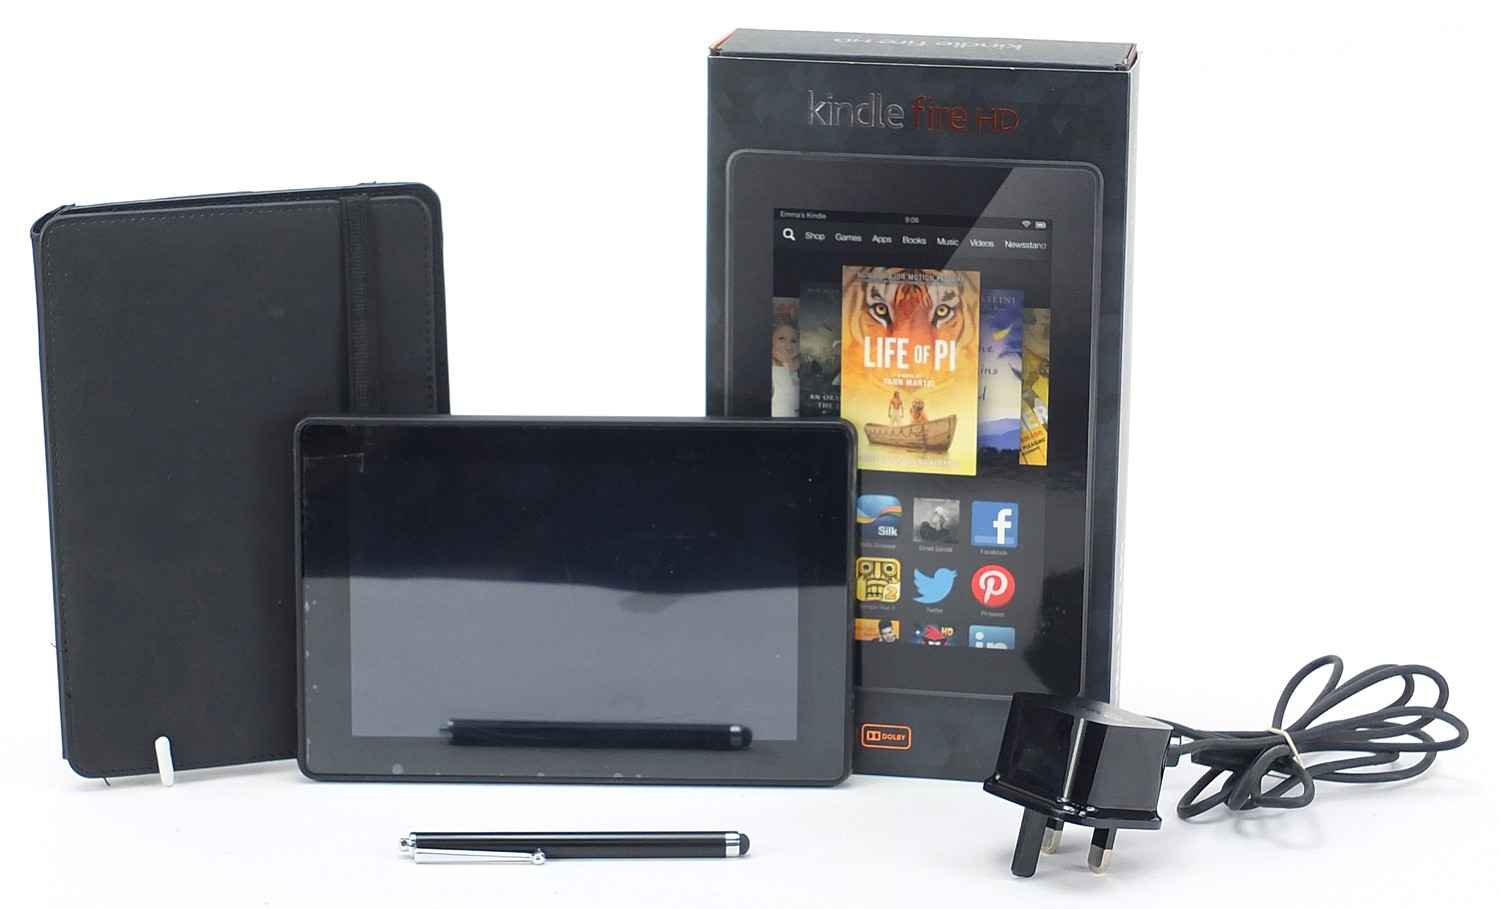 Amazon Kindle Fire HD with charger and box :For Further Condition Reports Please Visit Our